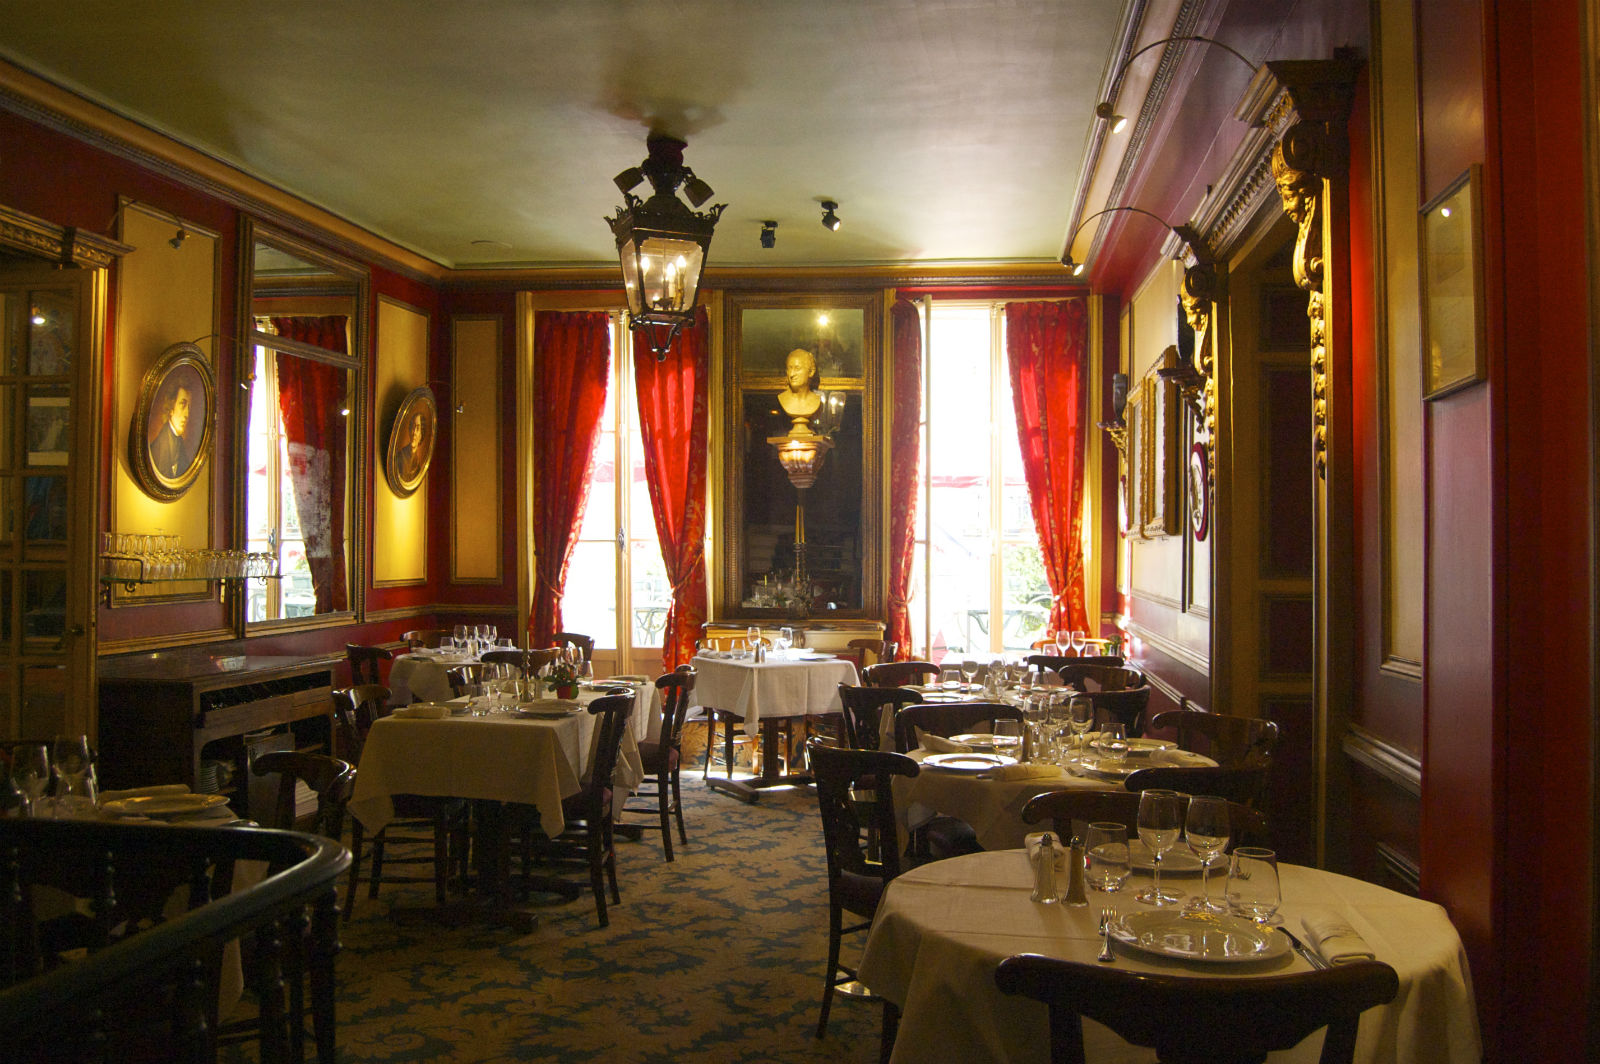 HiP Paris blog. A Paris dining experience with a side of French history at Le Procope. Sumptuous details in the dining room.